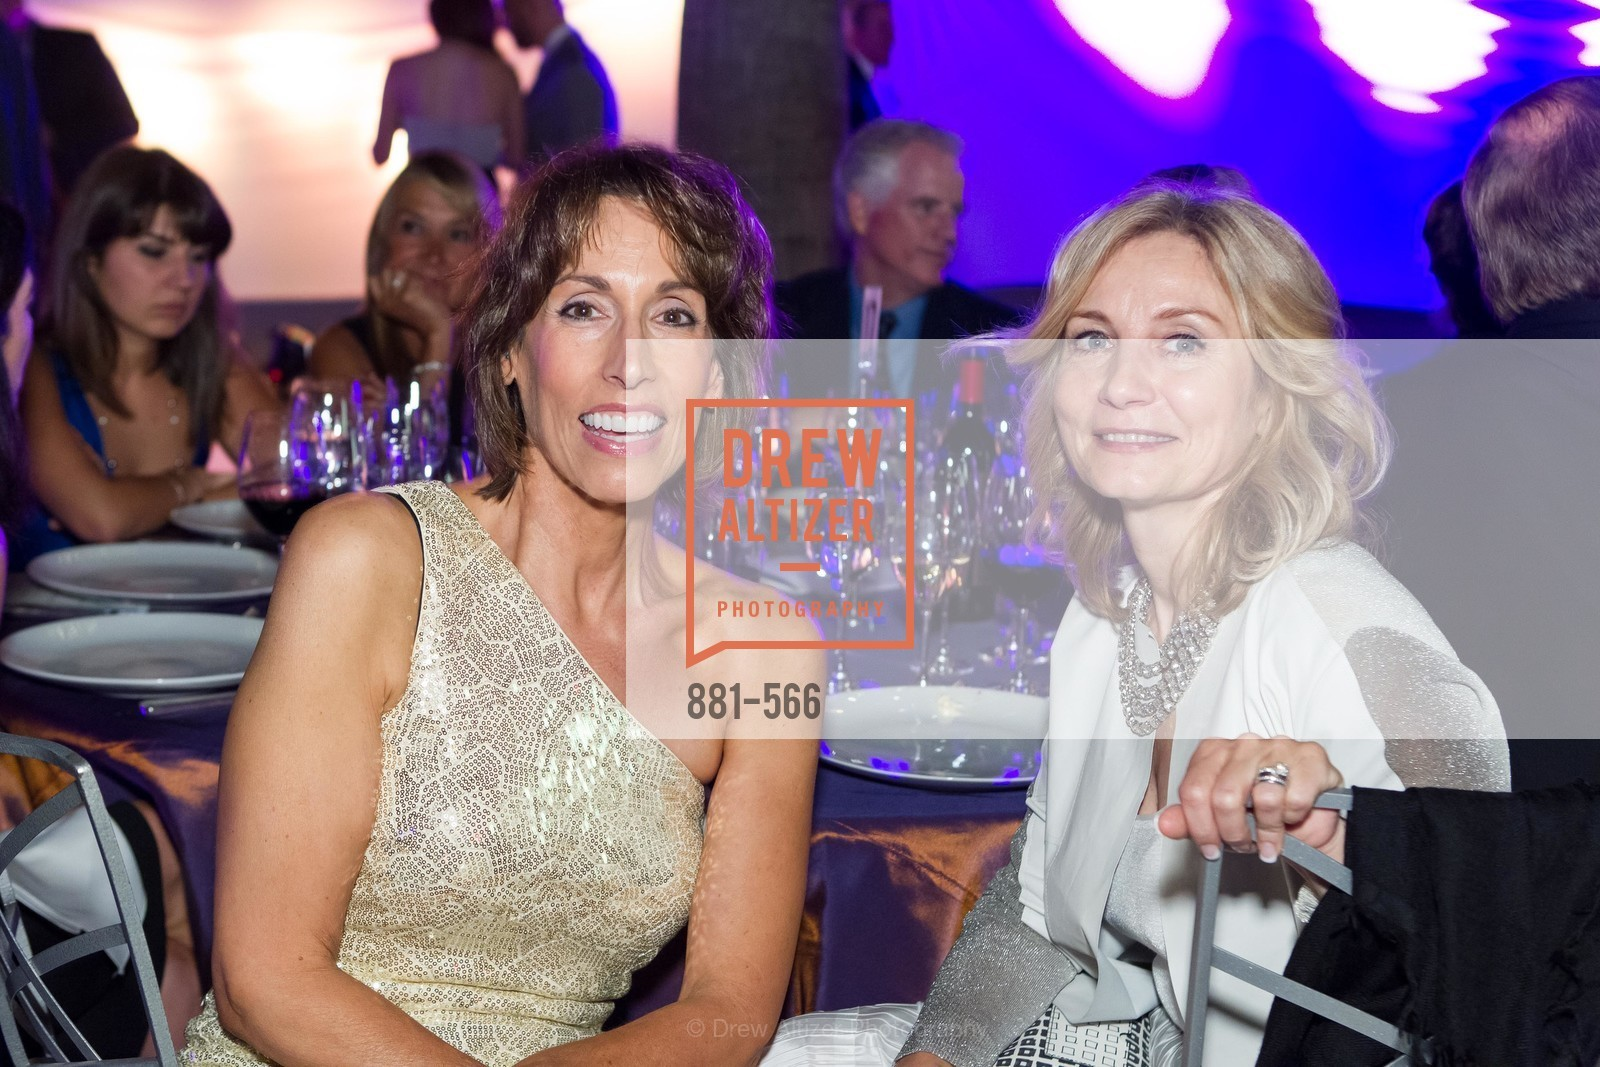 Randa Davis, Elena Lebedeva, SAN JOSE MUSEUM OF ART'S Spectrum Gala - 45th Anniversary, US, September 13th, 2014,Drew Altizer, Drew Altizer Photography, full-service agency, private events, San Francisco photographer, photographer california